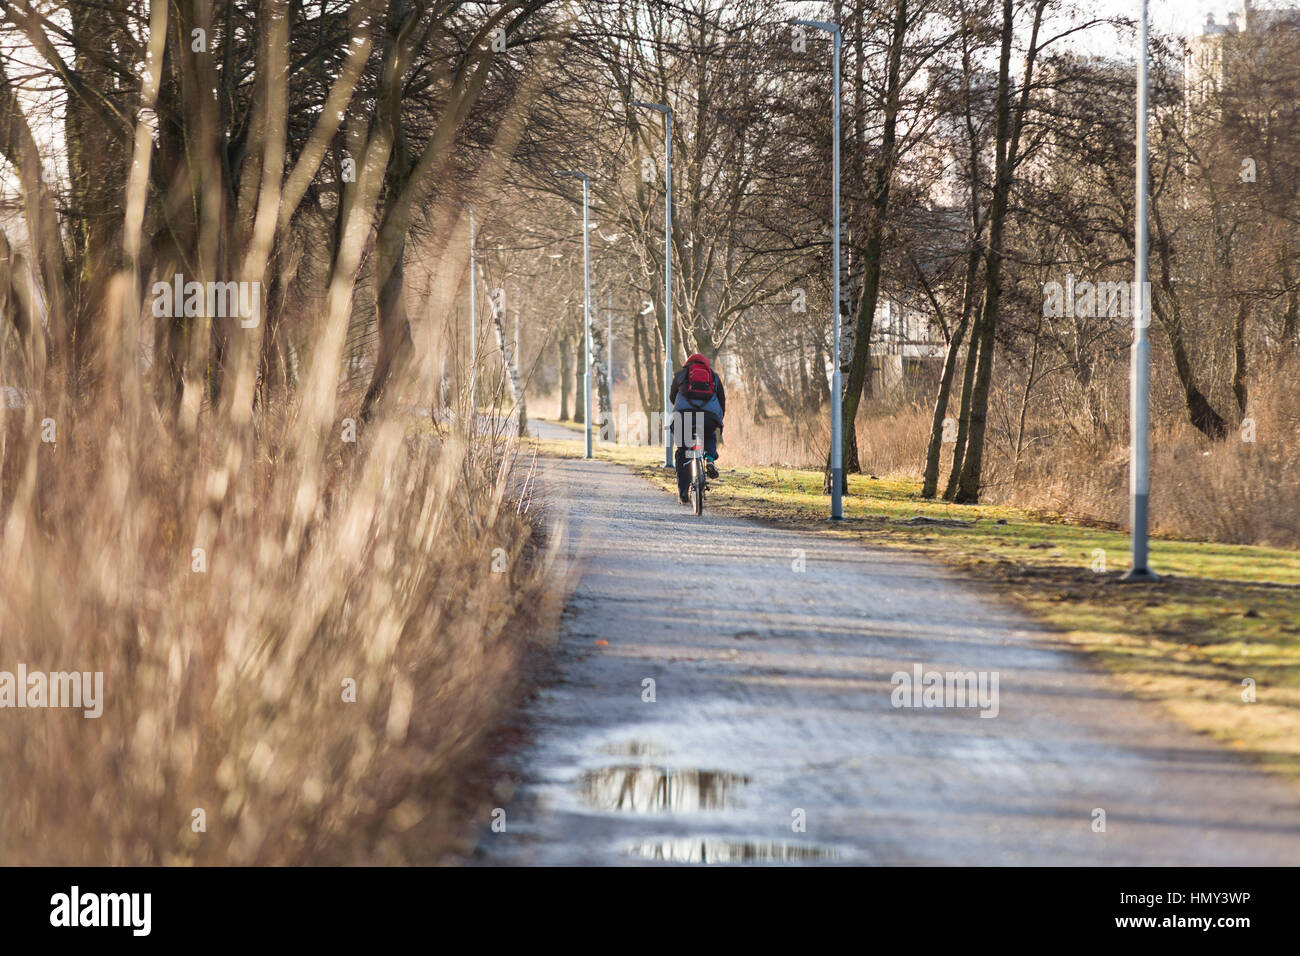 Rear view of person bicycling on gravel bicycle path - Stock Image